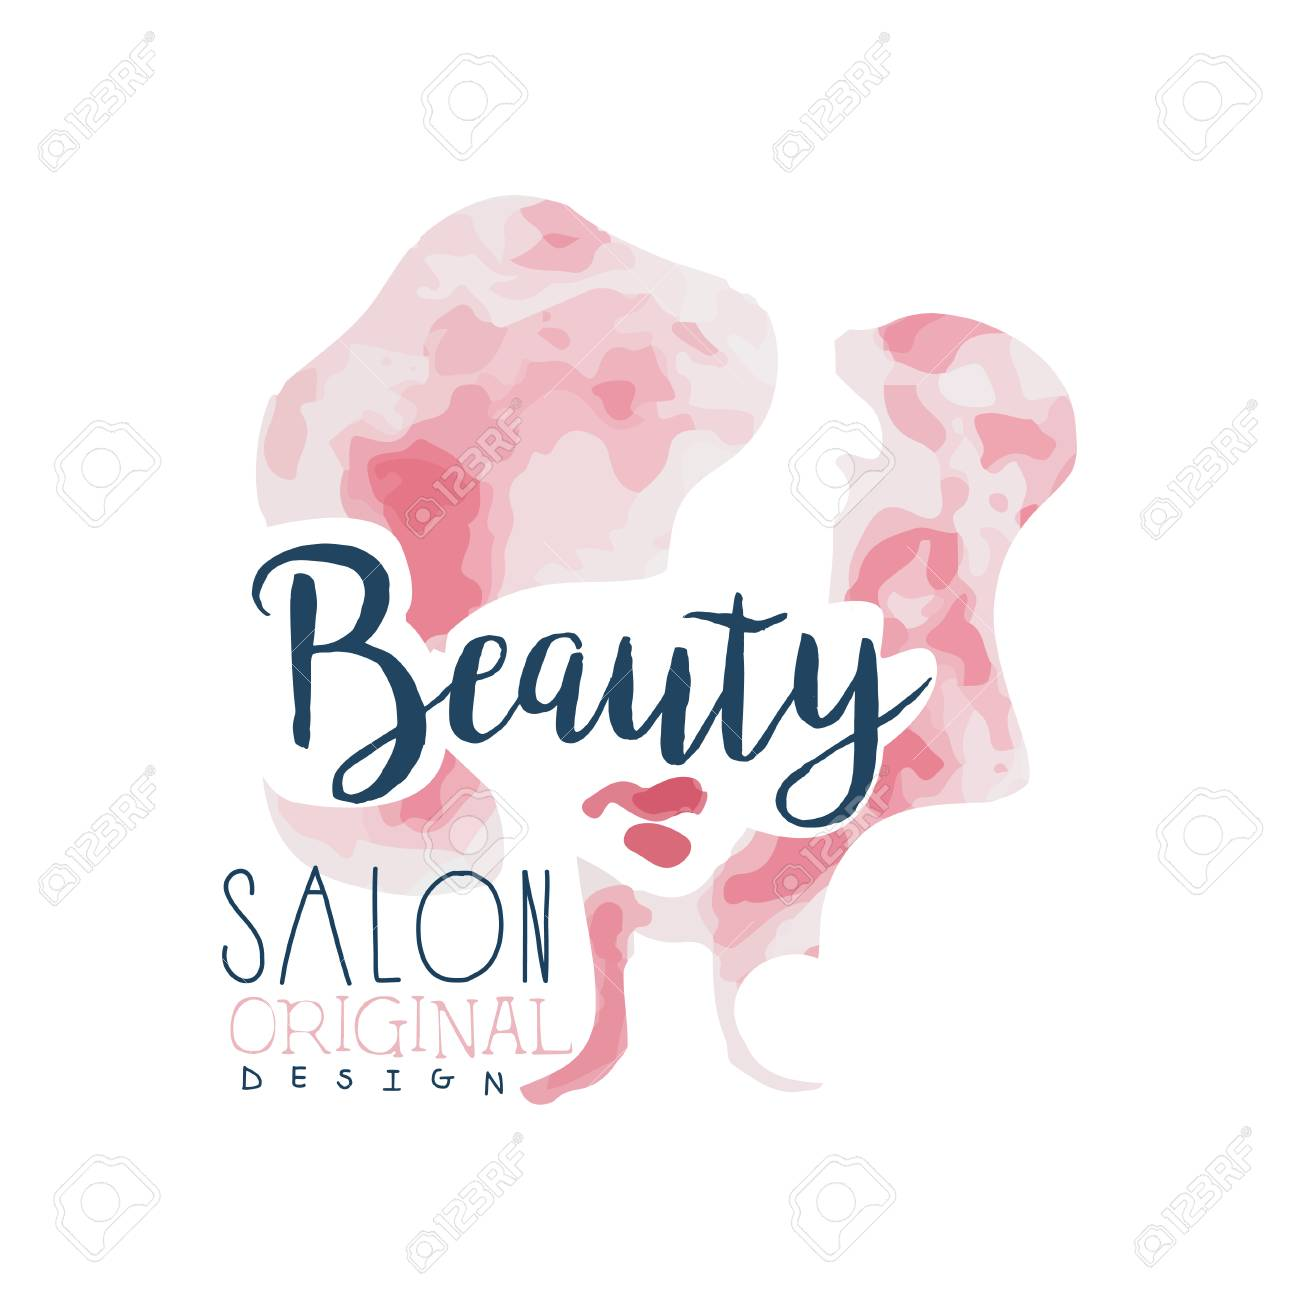 Beauty Salon Original Design Label For Hair Or Beauty Studio Royalty Free Cliparts Vectors And Stock Illustration Image 88394840